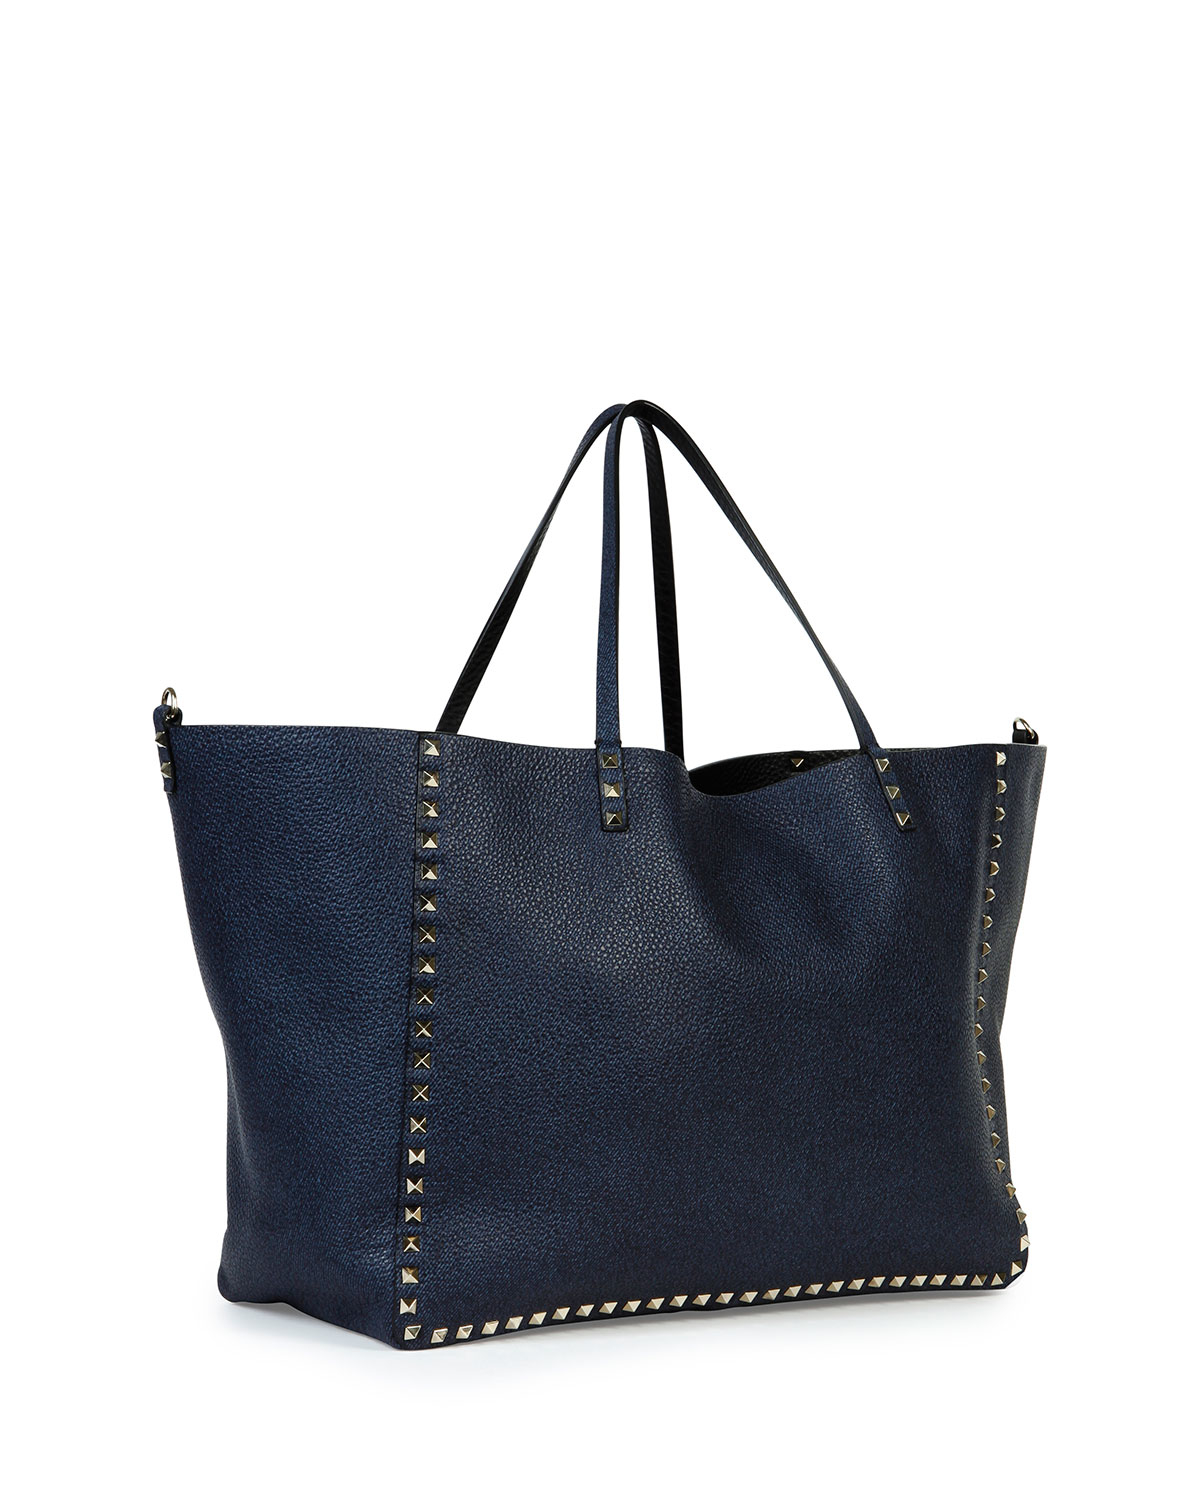 a43b4e9759 Gallery. Previously sold at: Neiman Marcus · Women's Reversible Bags  Women's Valentino Rockstud Bags